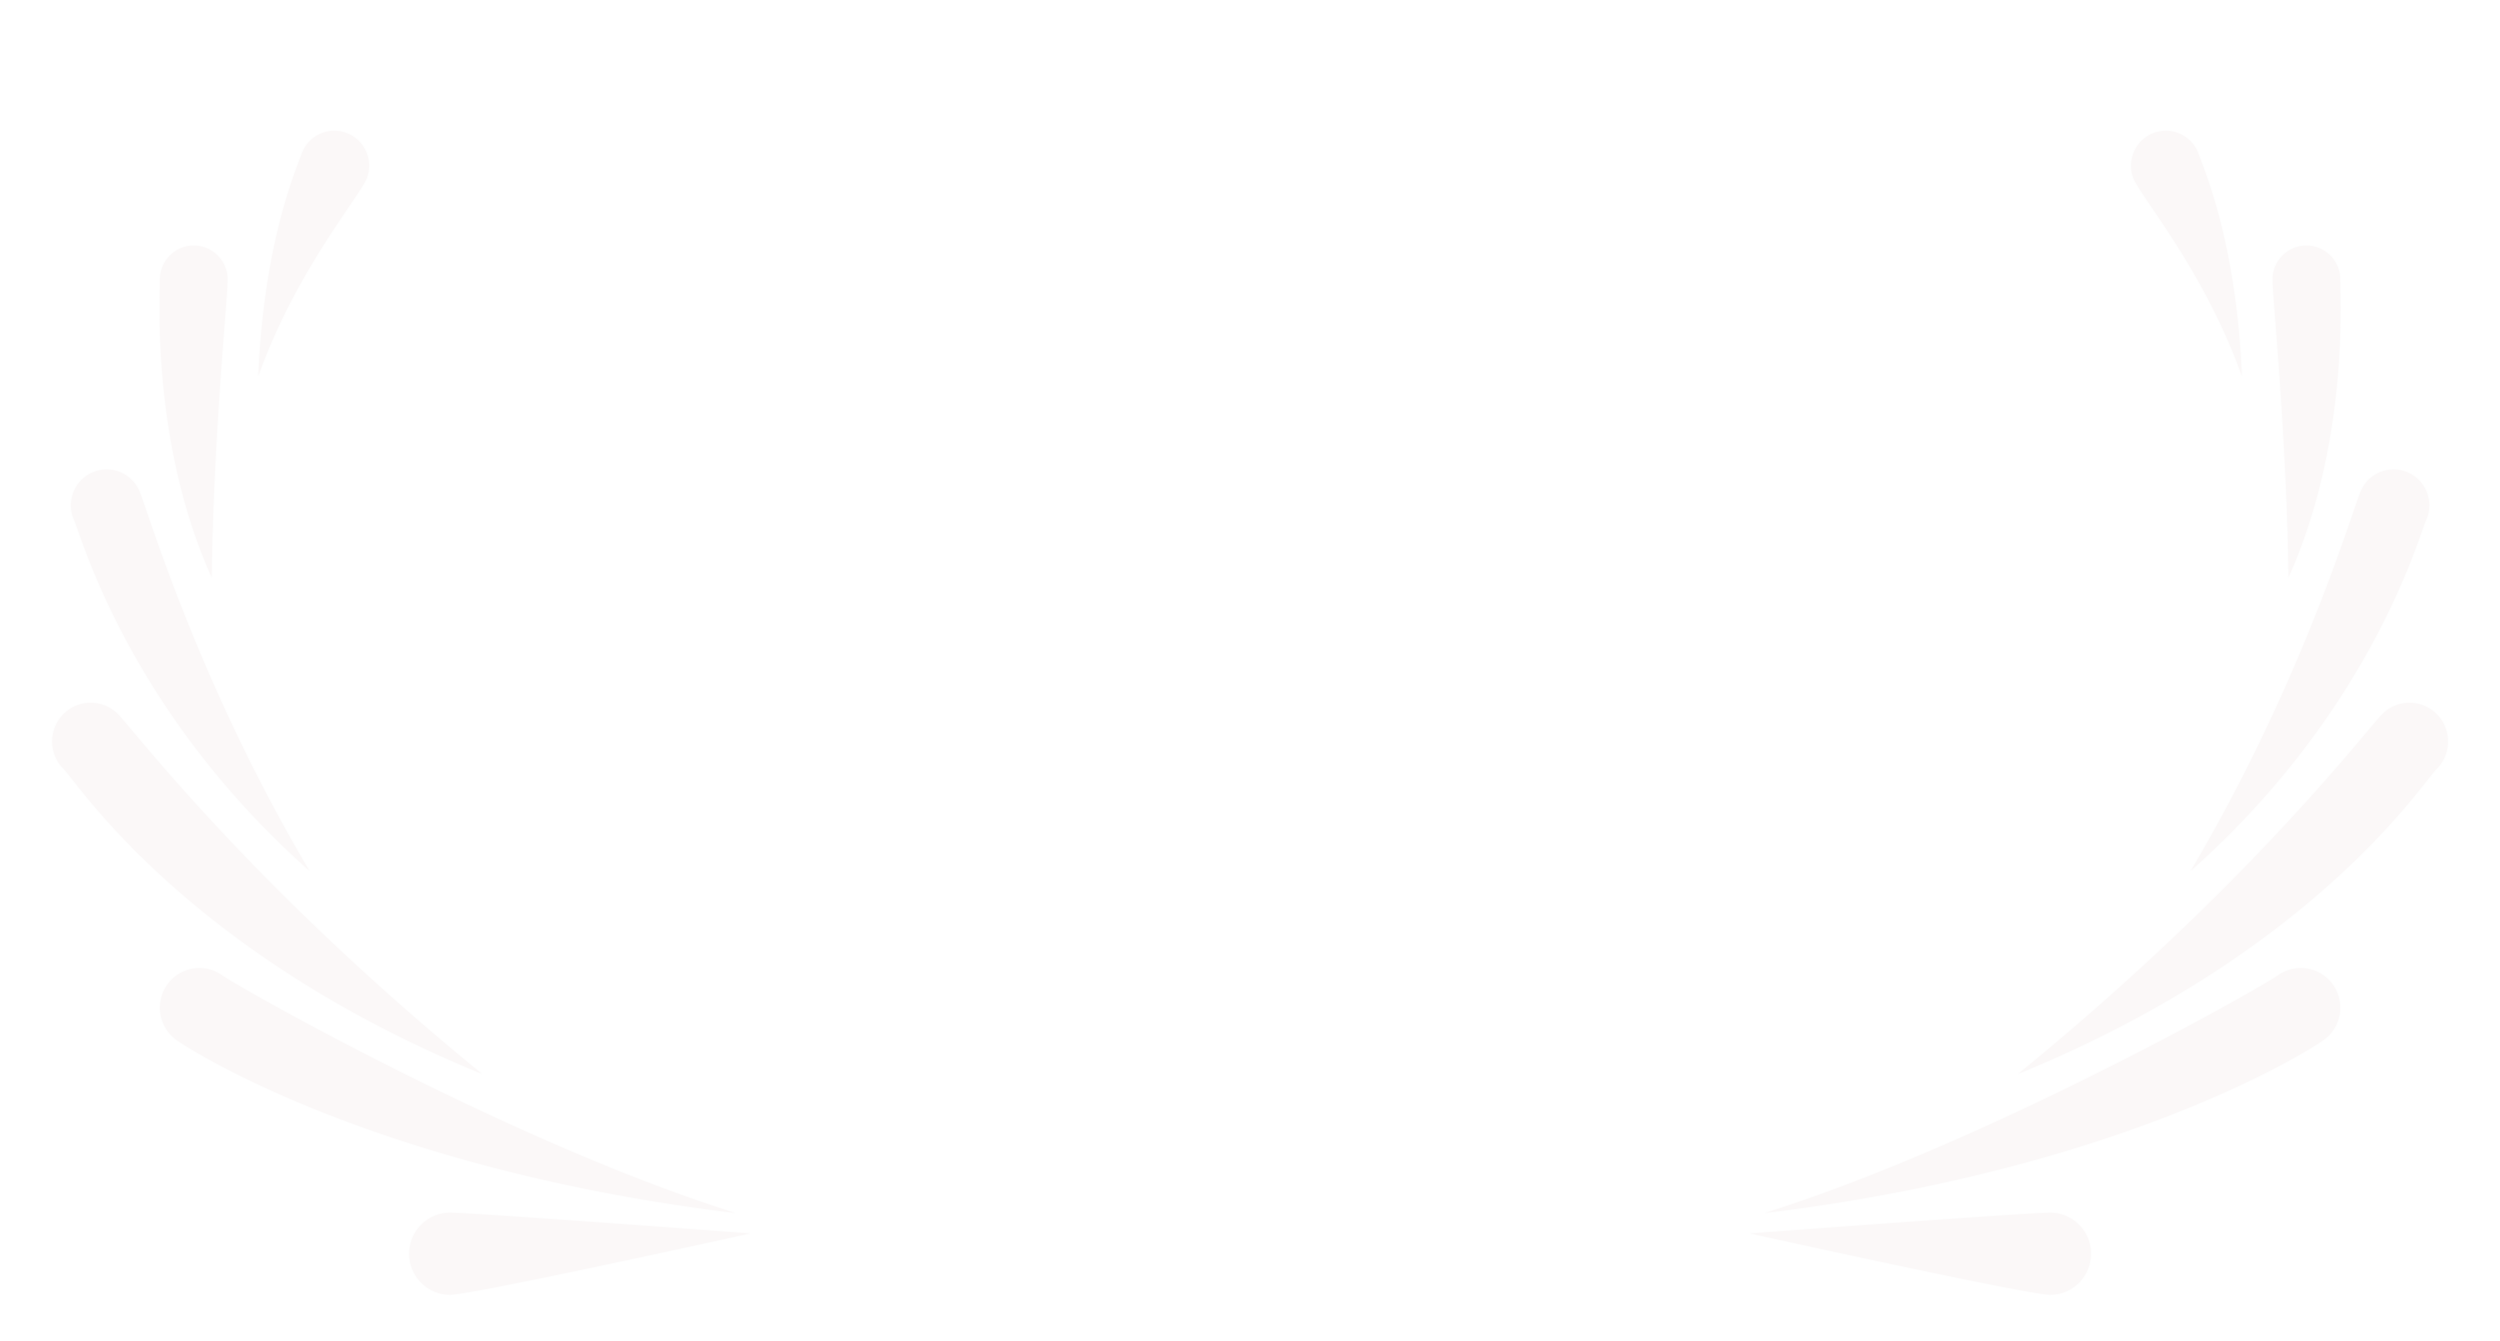 OFFICIALCOMPETITION-SHIFTFilmFestival-2018white02.png